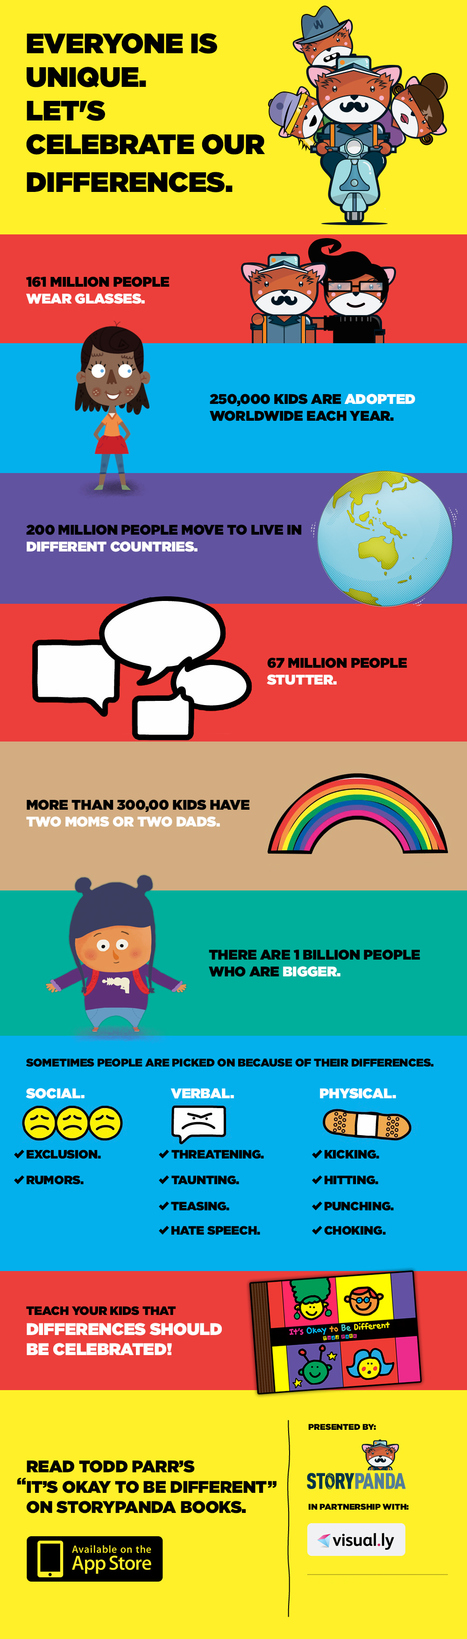 A Must-See Anti-Bullying Poster Perfect For Classrooms | education | Scoop.it